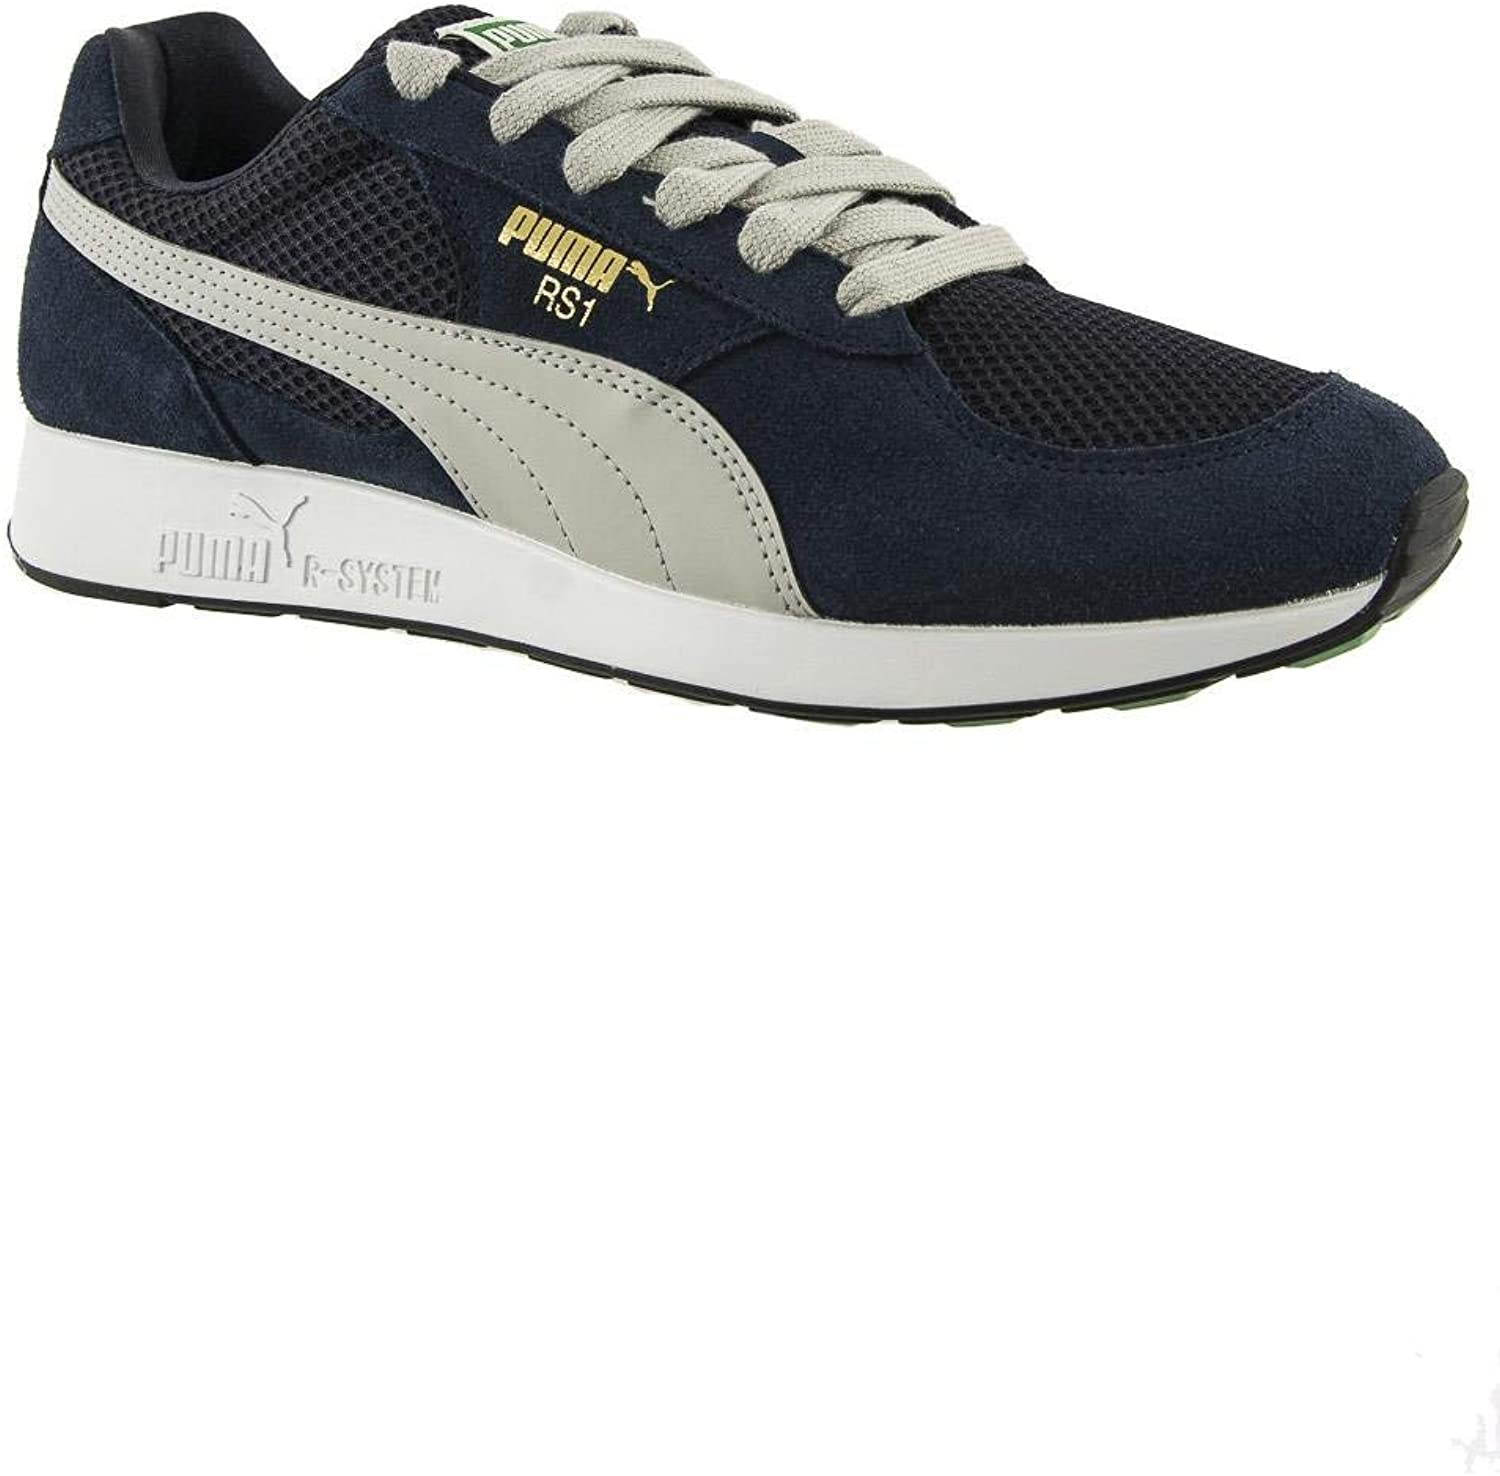 Puma Unisex Adults' Rs-1 Og Low-Top Sneakers